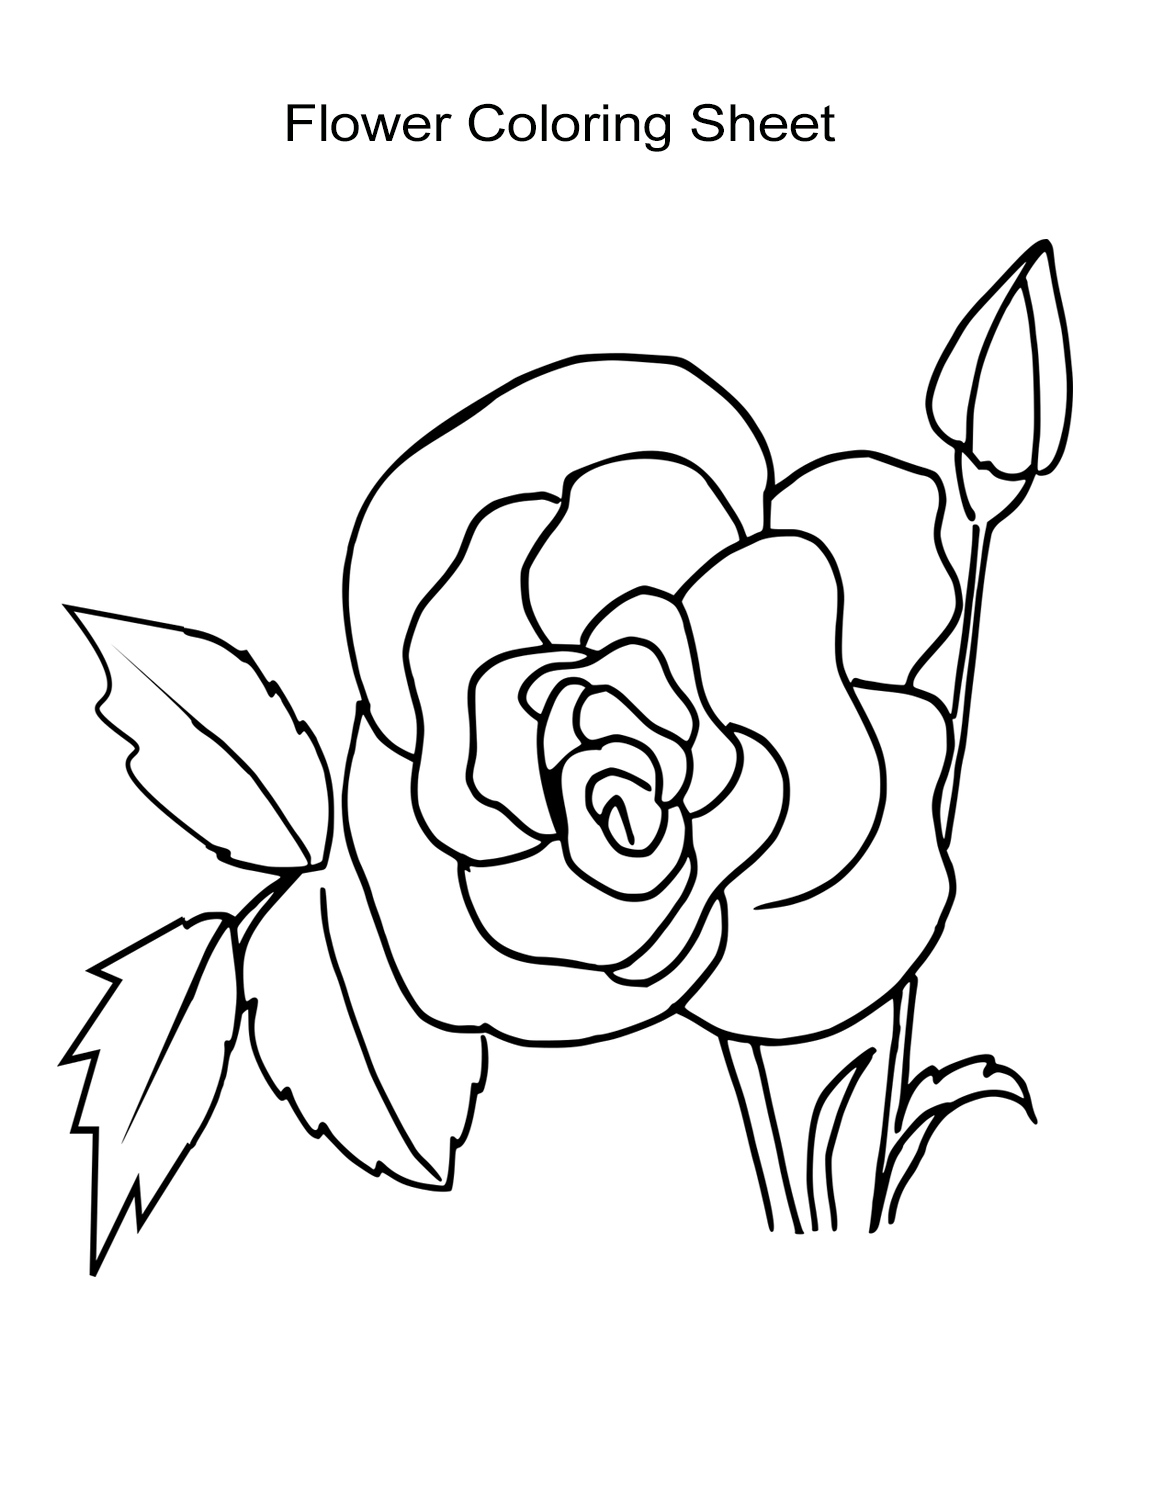 flower coloring pages for kids 10 flower coloring sheets for girls and boys all esl flower kids for pages coloring